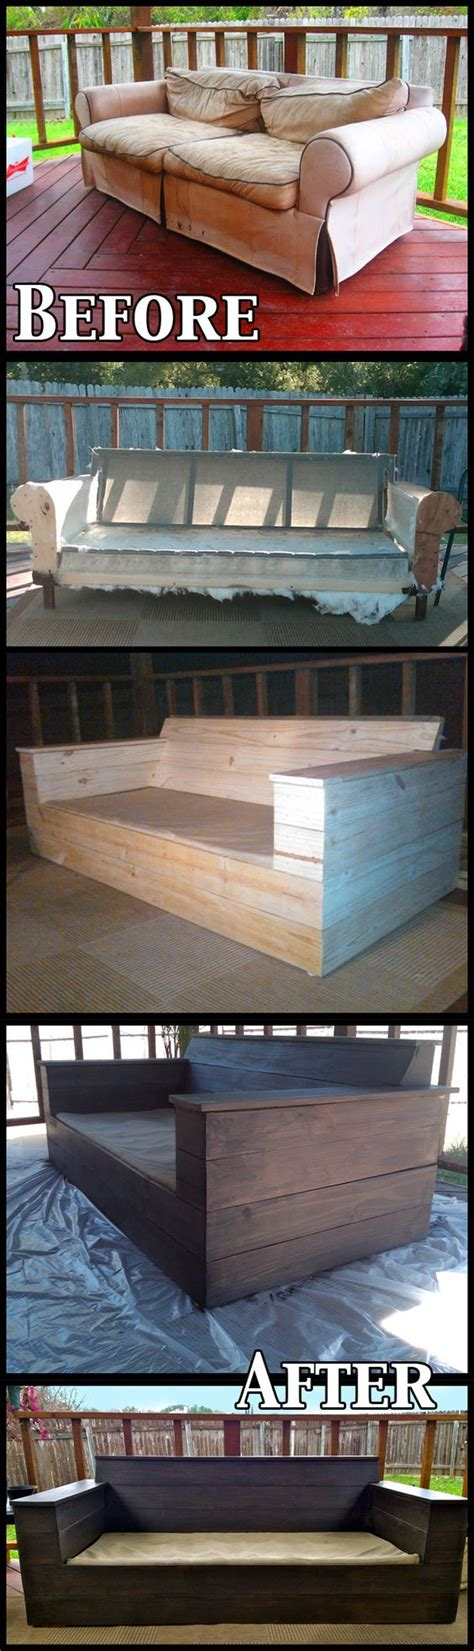 couch fencing couch reuse recycle and fence on pinterest